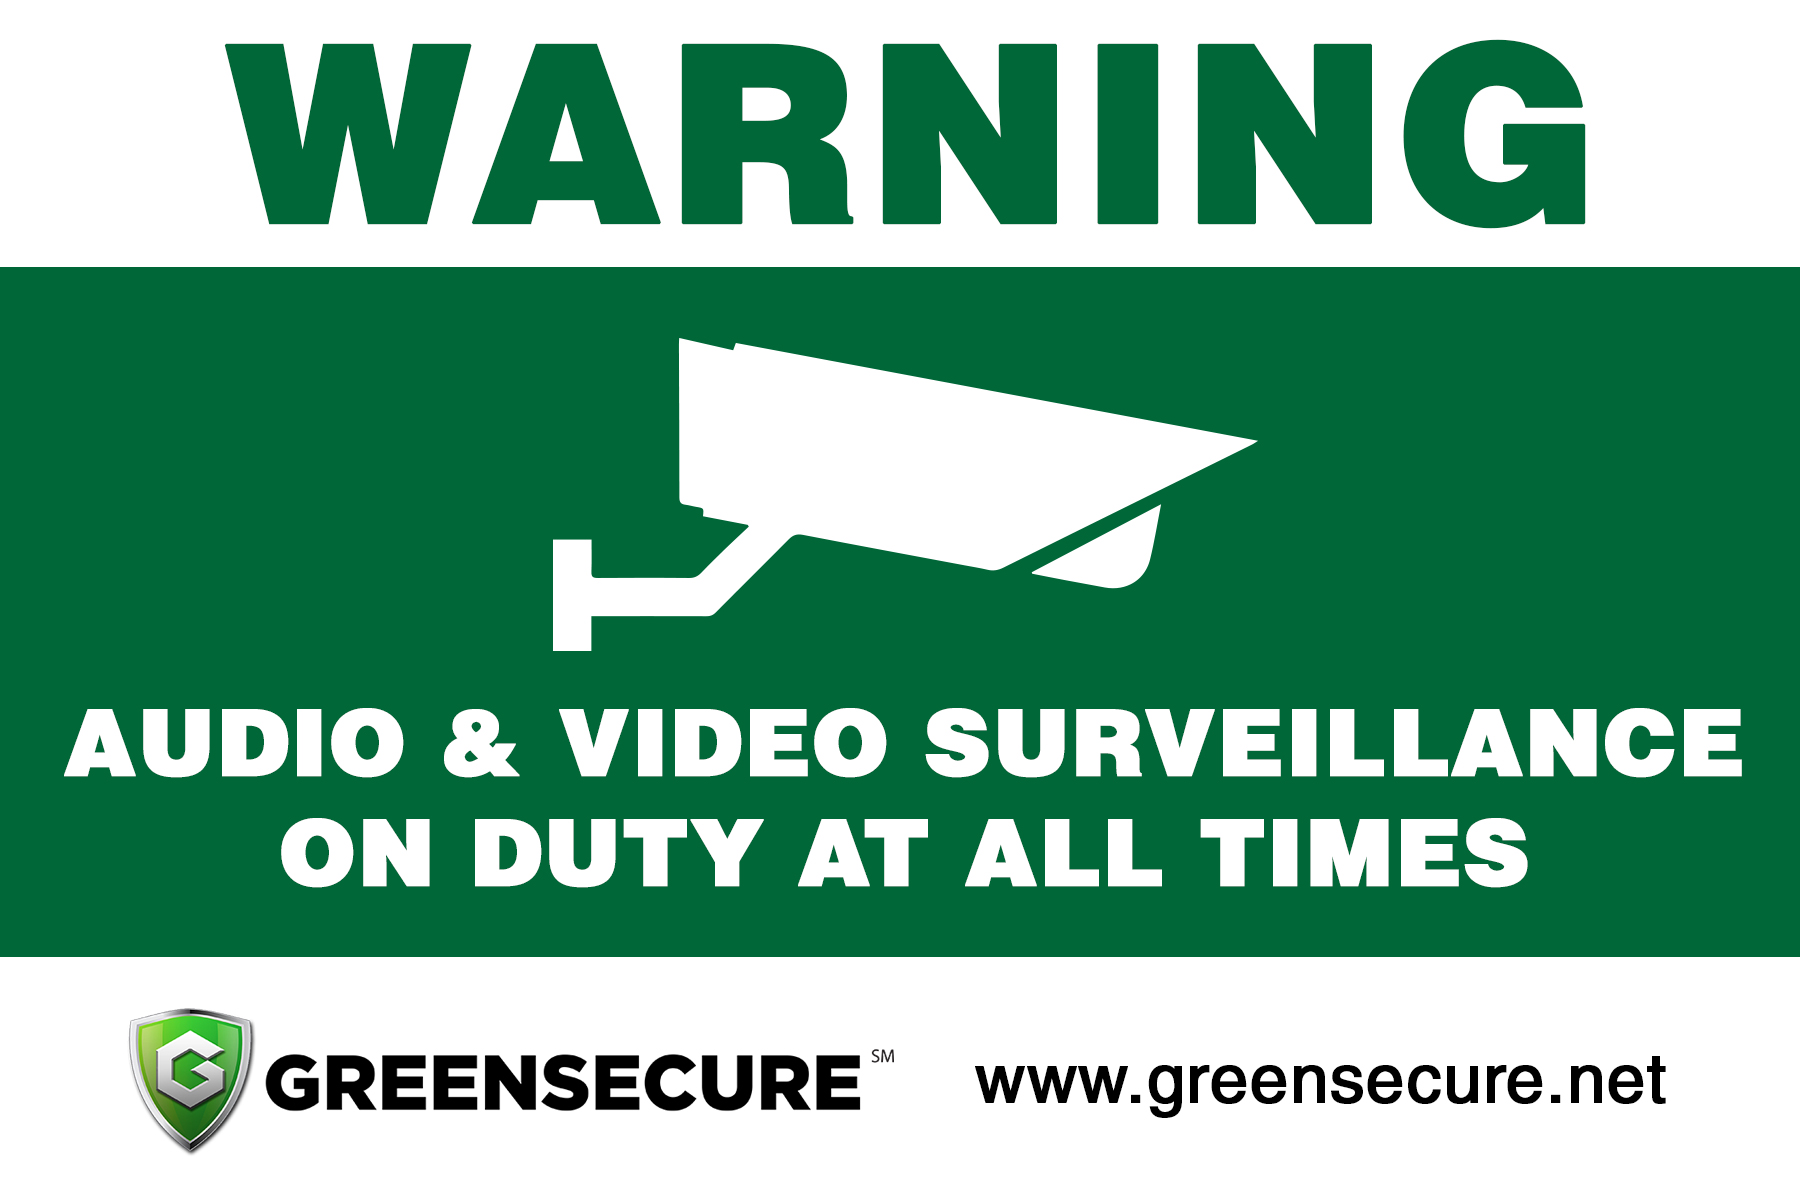 gw-greensecure-surveillance-notice-wide-001